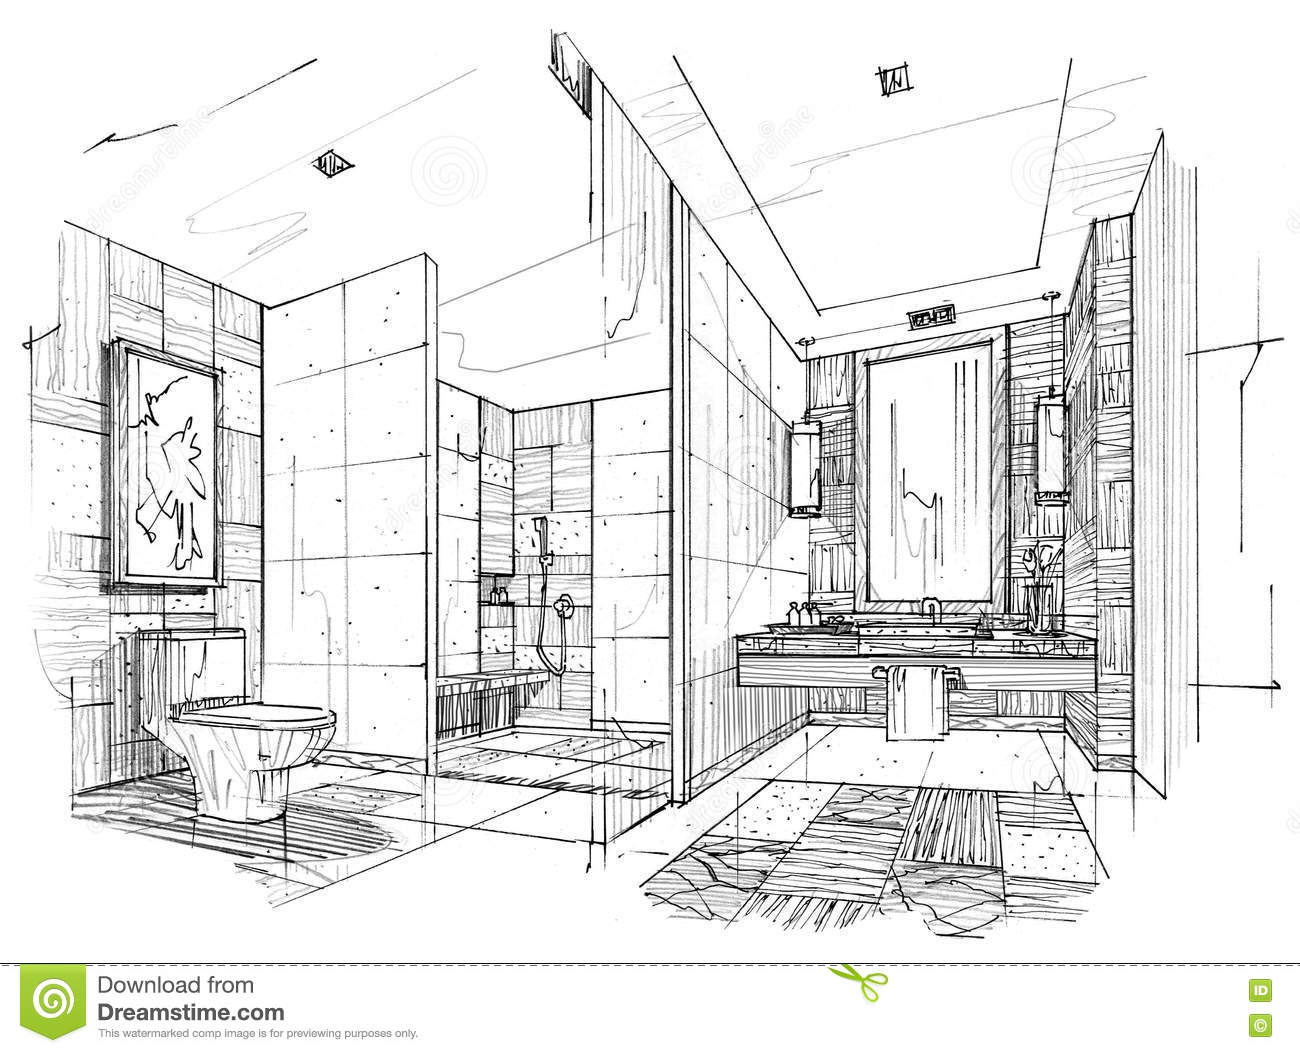 91 Bathroom Toilet Drawing Sketch Perspective Interior Toilet Bathroom Black And White Design